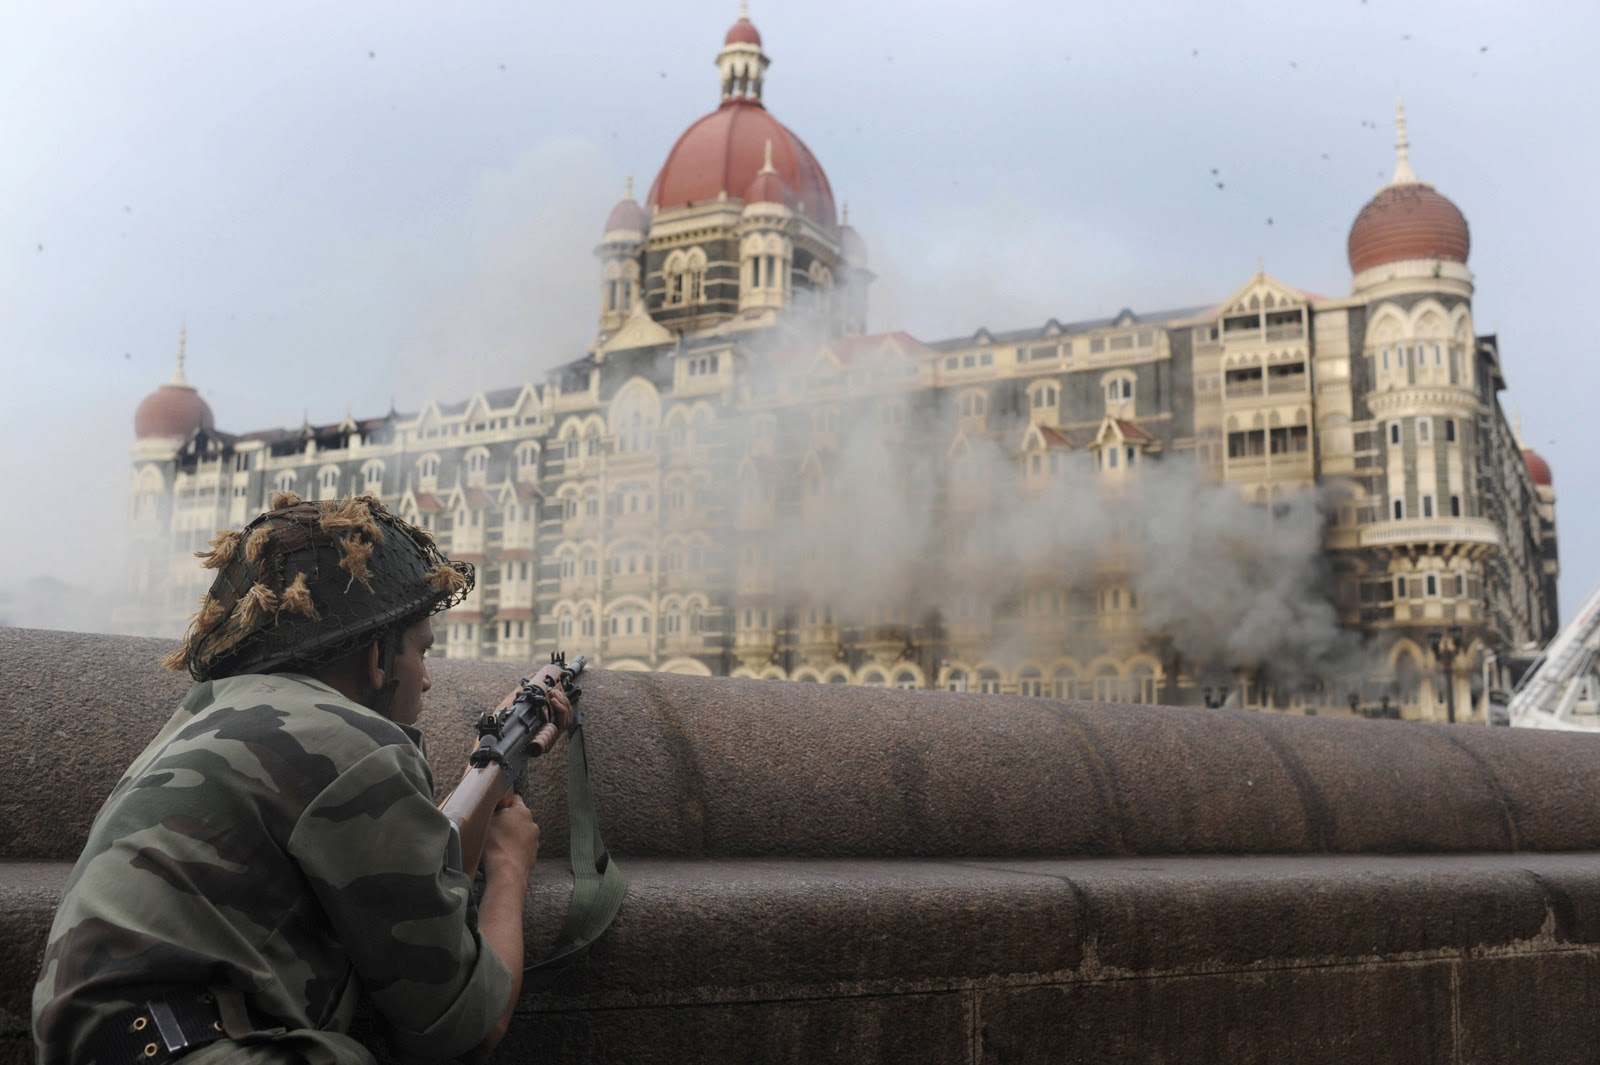 essay on counter terrorism in india A critical introduction to counter terrorism and state crime the war on terror: lessons from ireland essays for civil liberties and democracy.